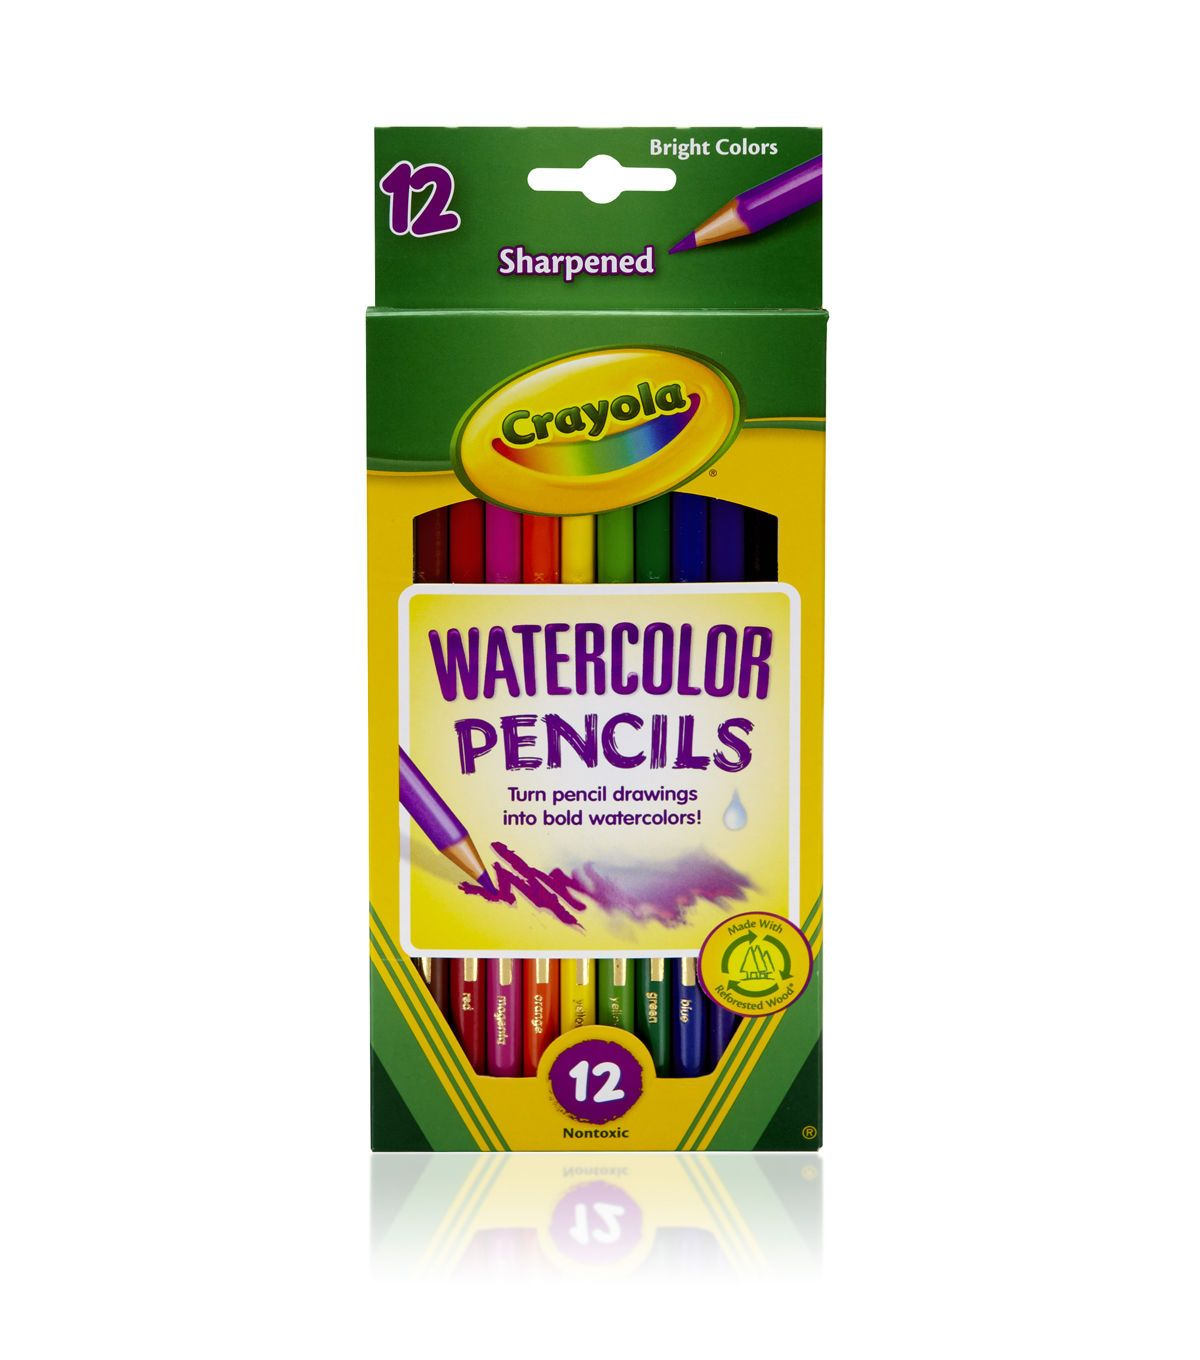 Crayola 12ct Watercolor Colored Pencils Crayola Colored Pencils